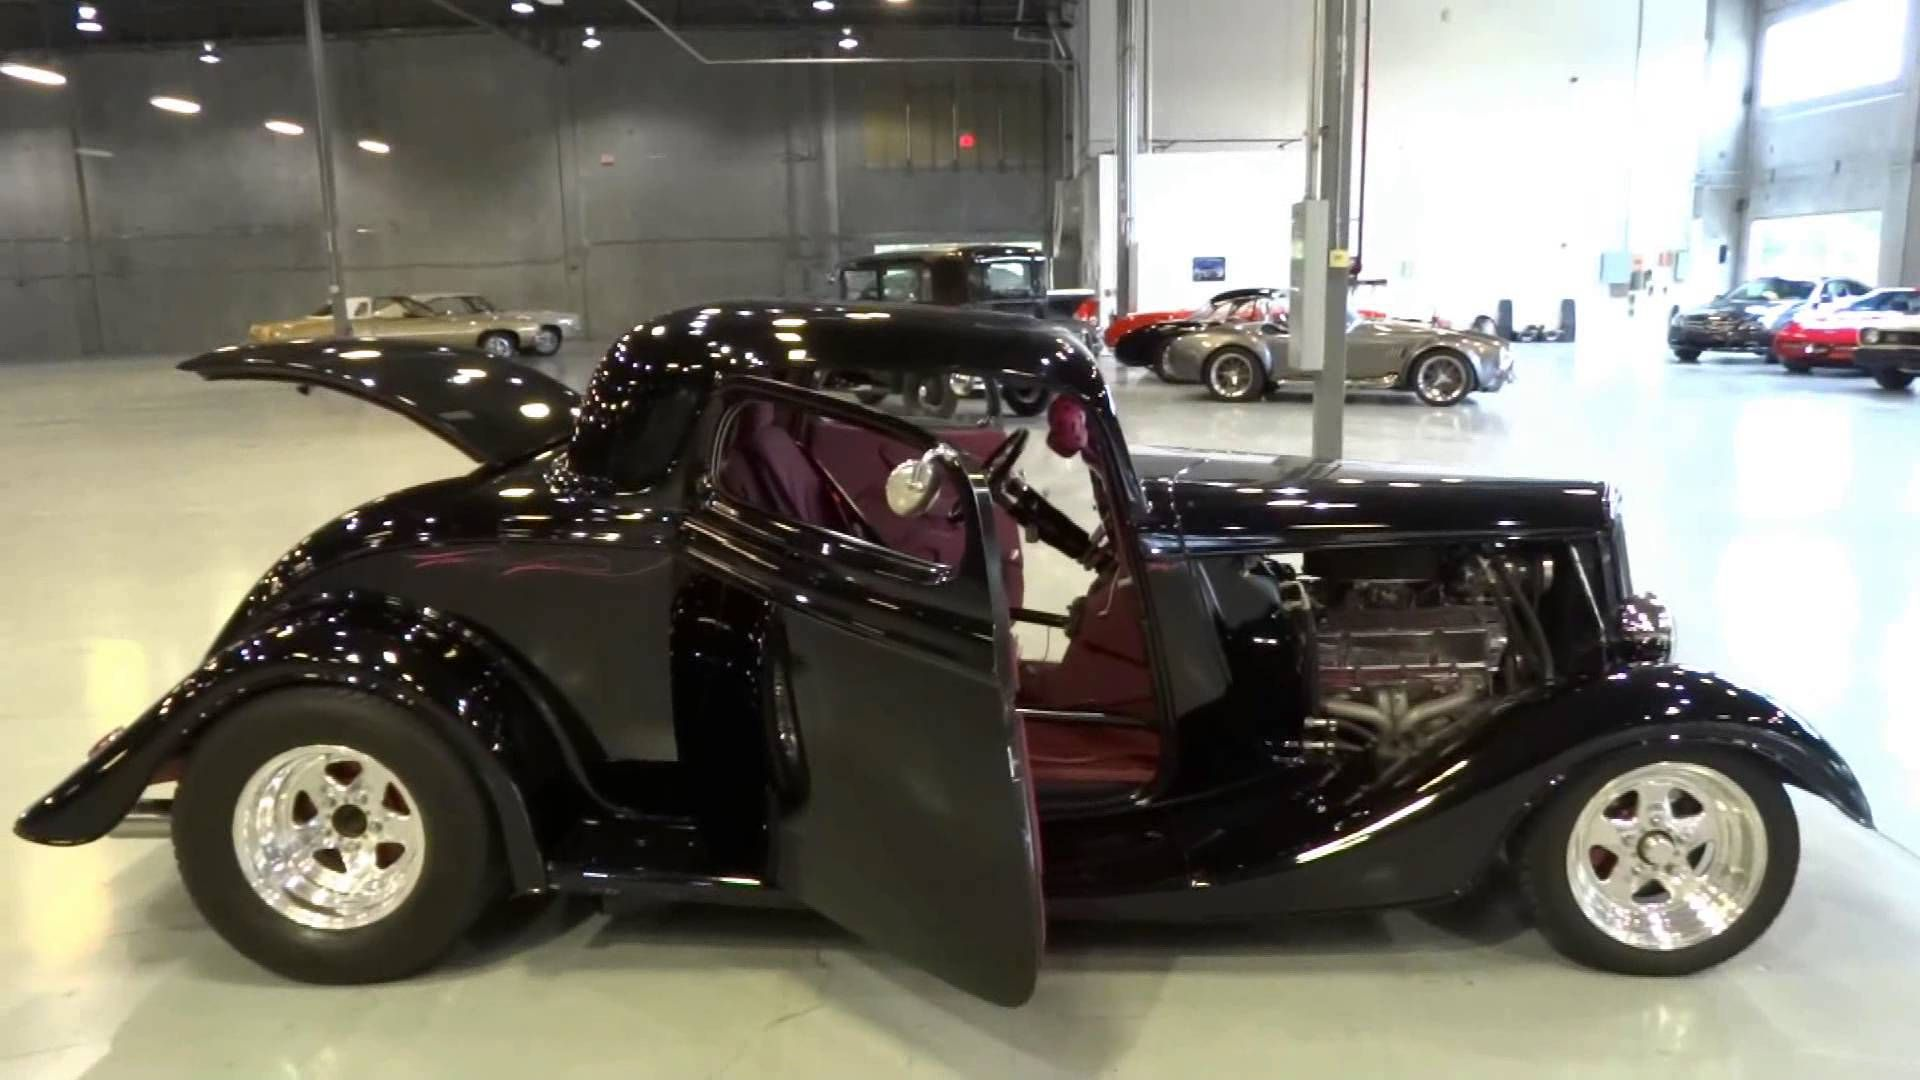 1934 Ford 3 Window Coupe ORD #0019 | Hot Rods & Street Rods ...